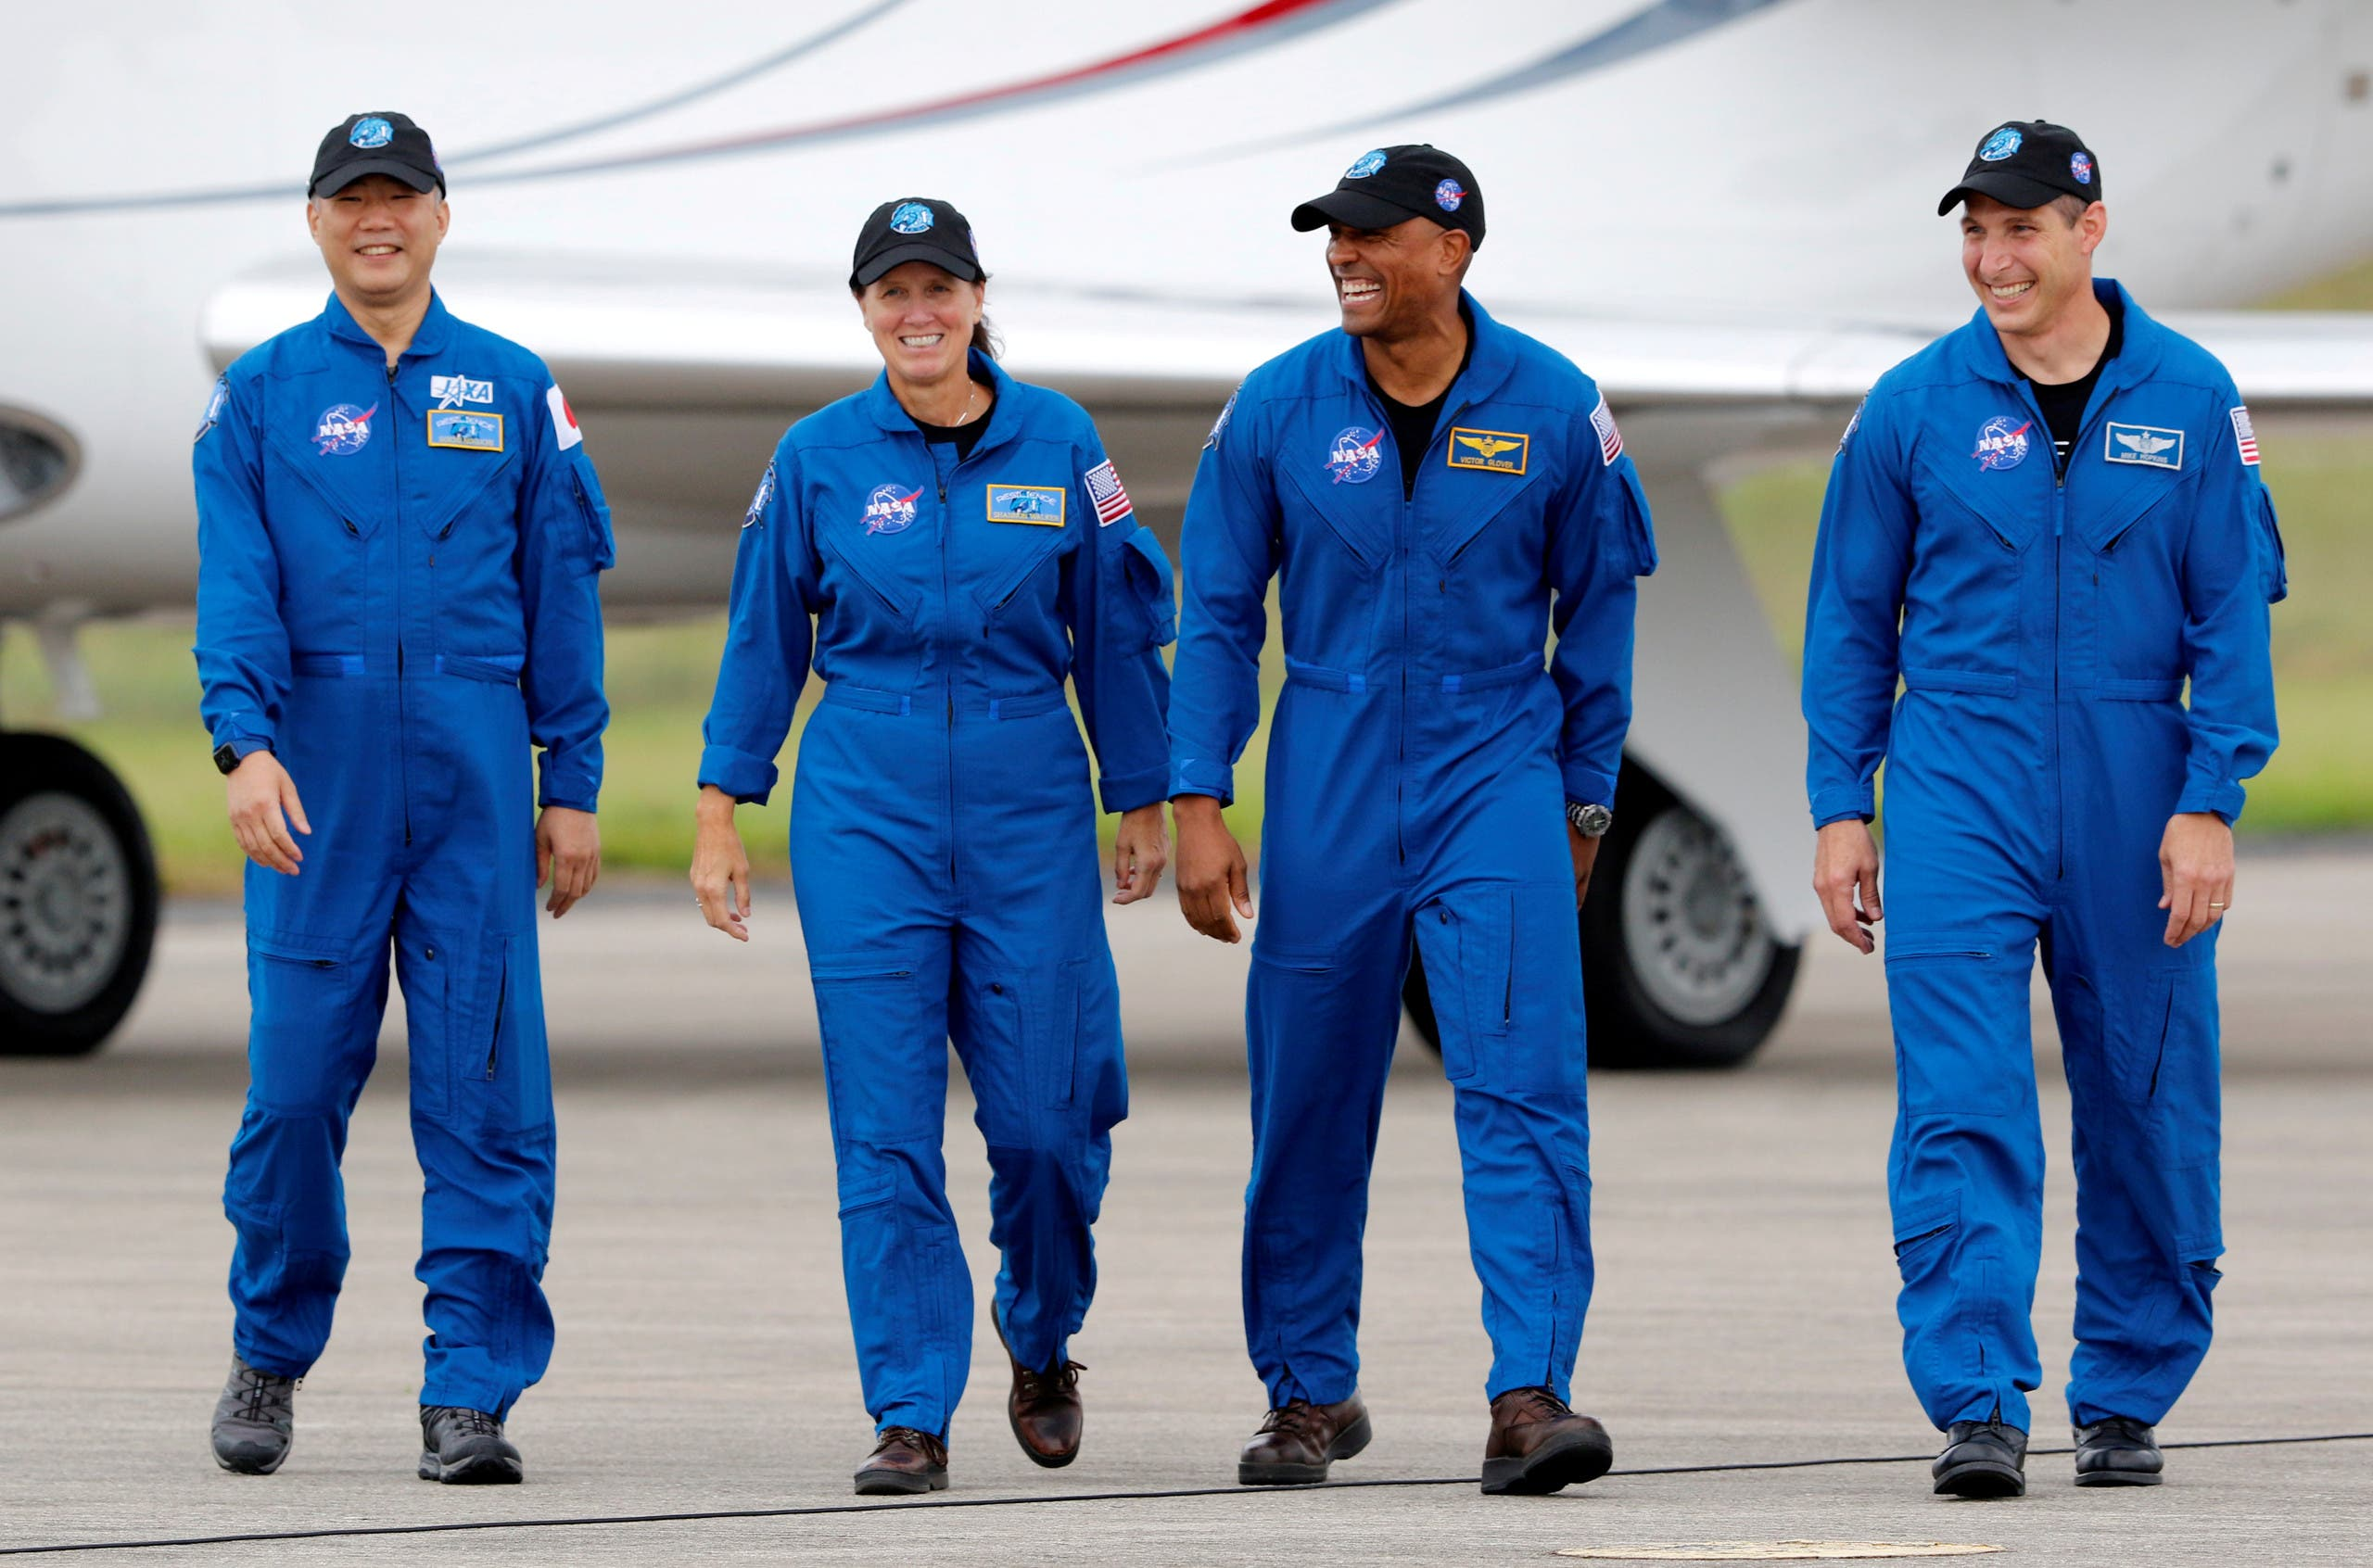 NASA astronauts Shannon Walker, Victor Glover, Mike Hopkins, and JAXA (Japan Aerospace Exploration Agency) astronaut Soichi Noguchi, who comprise Crew-1, walk at Kennedy Space Center ahead of the NASA/SpaceX launch of the first operational commercial crew mission in Cape Canaveral, Florida, U.S., November 8, 2020. (File phote: Reuters)